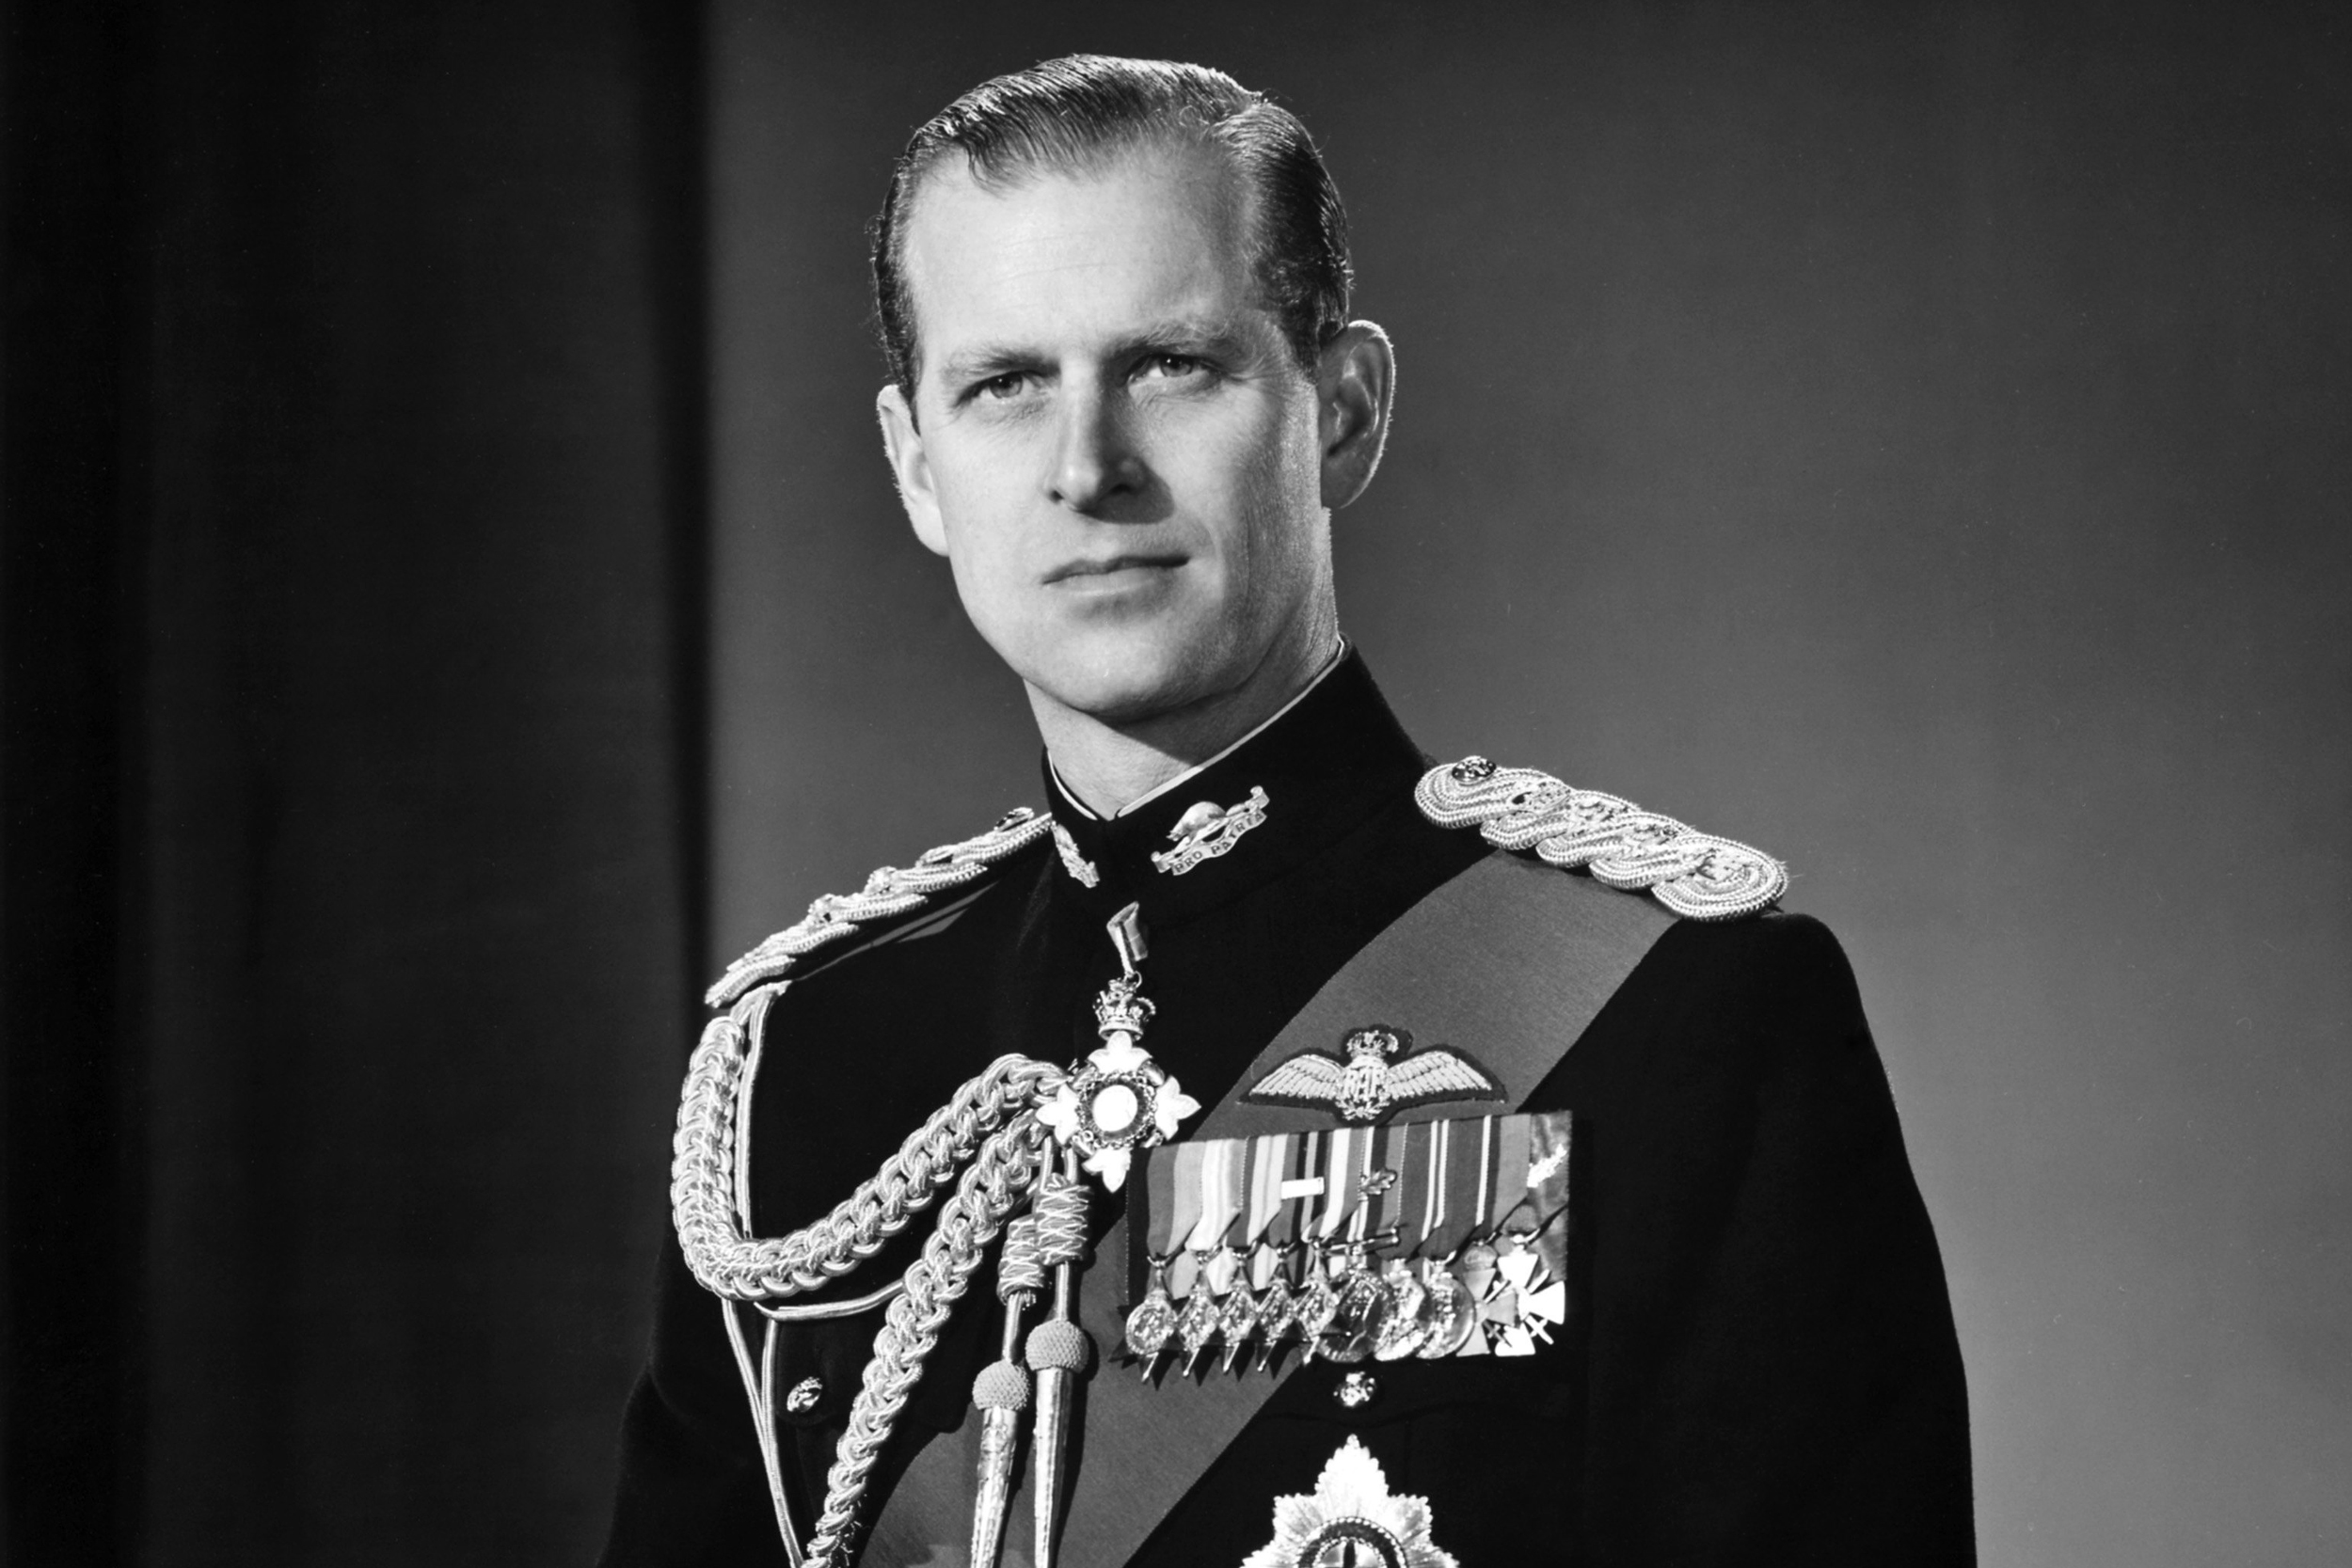 Prince Philip, husband of Britain's Queen Elizabeth II, dies at 99